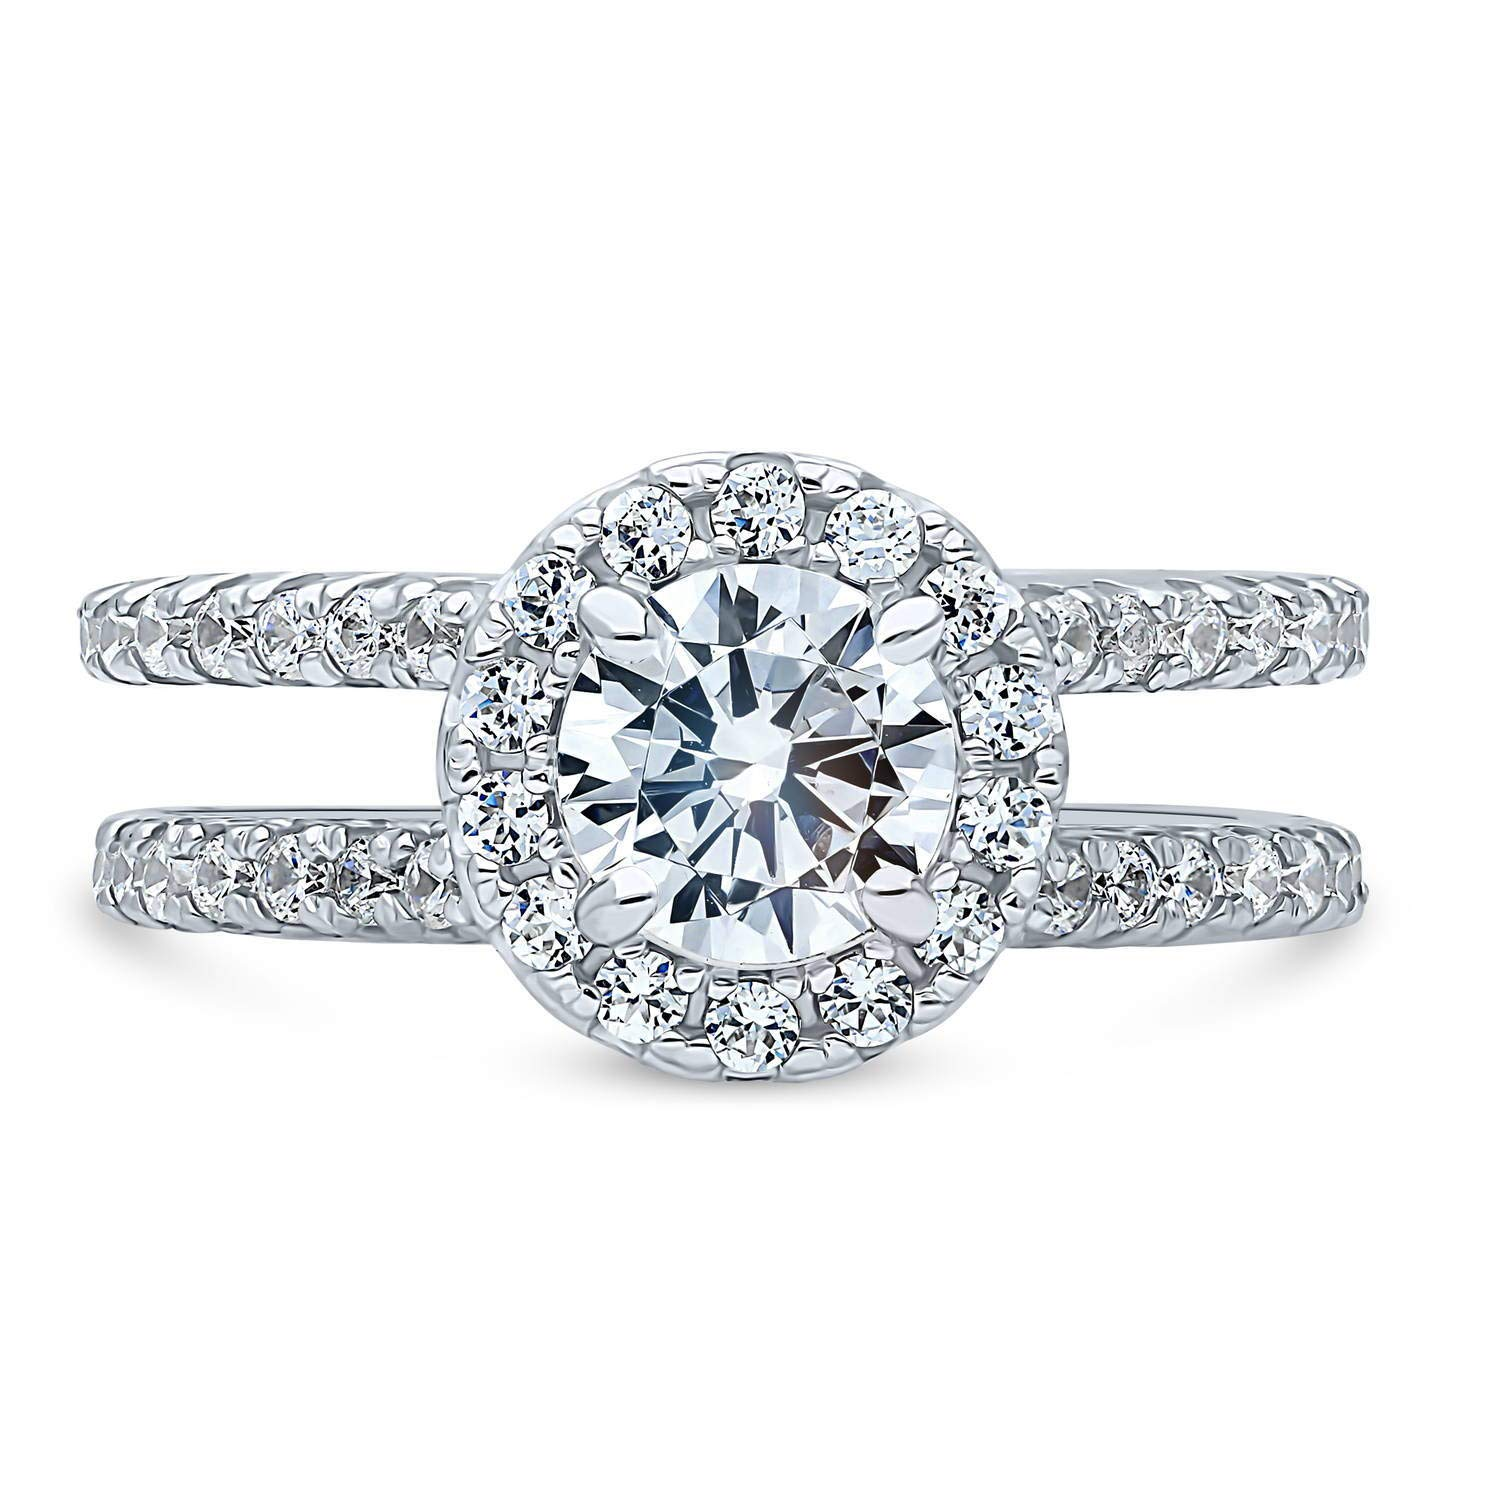 BERRICLE Rhodium Plated Sterling Silver Round Cubic Zirconia CZ Halo Engagement Ring 1.76 CTW